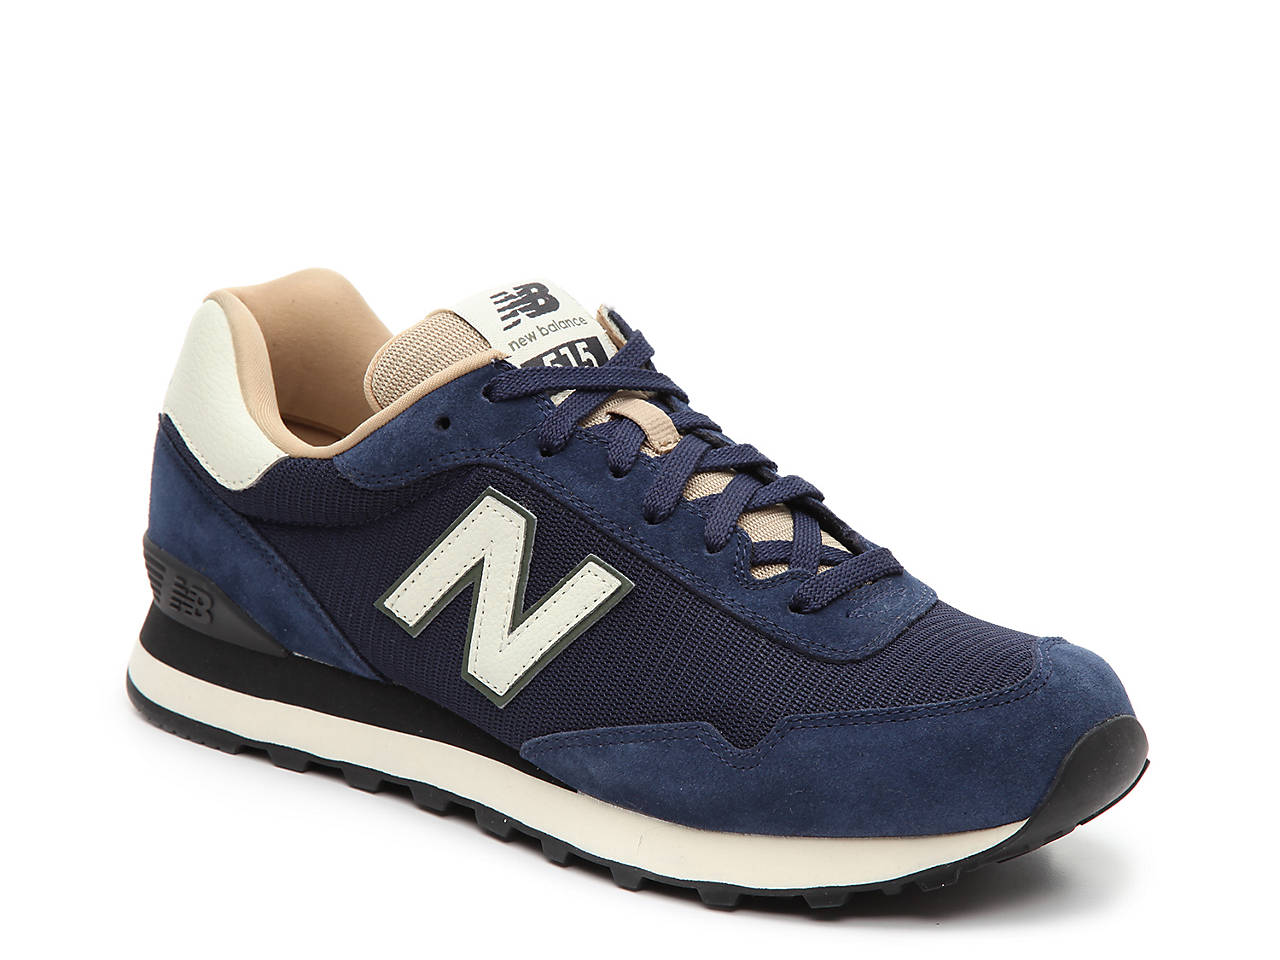 abfcdf75521a3 New Balance 515 Retro Sneaker - Men's Men's Shoes | DSW